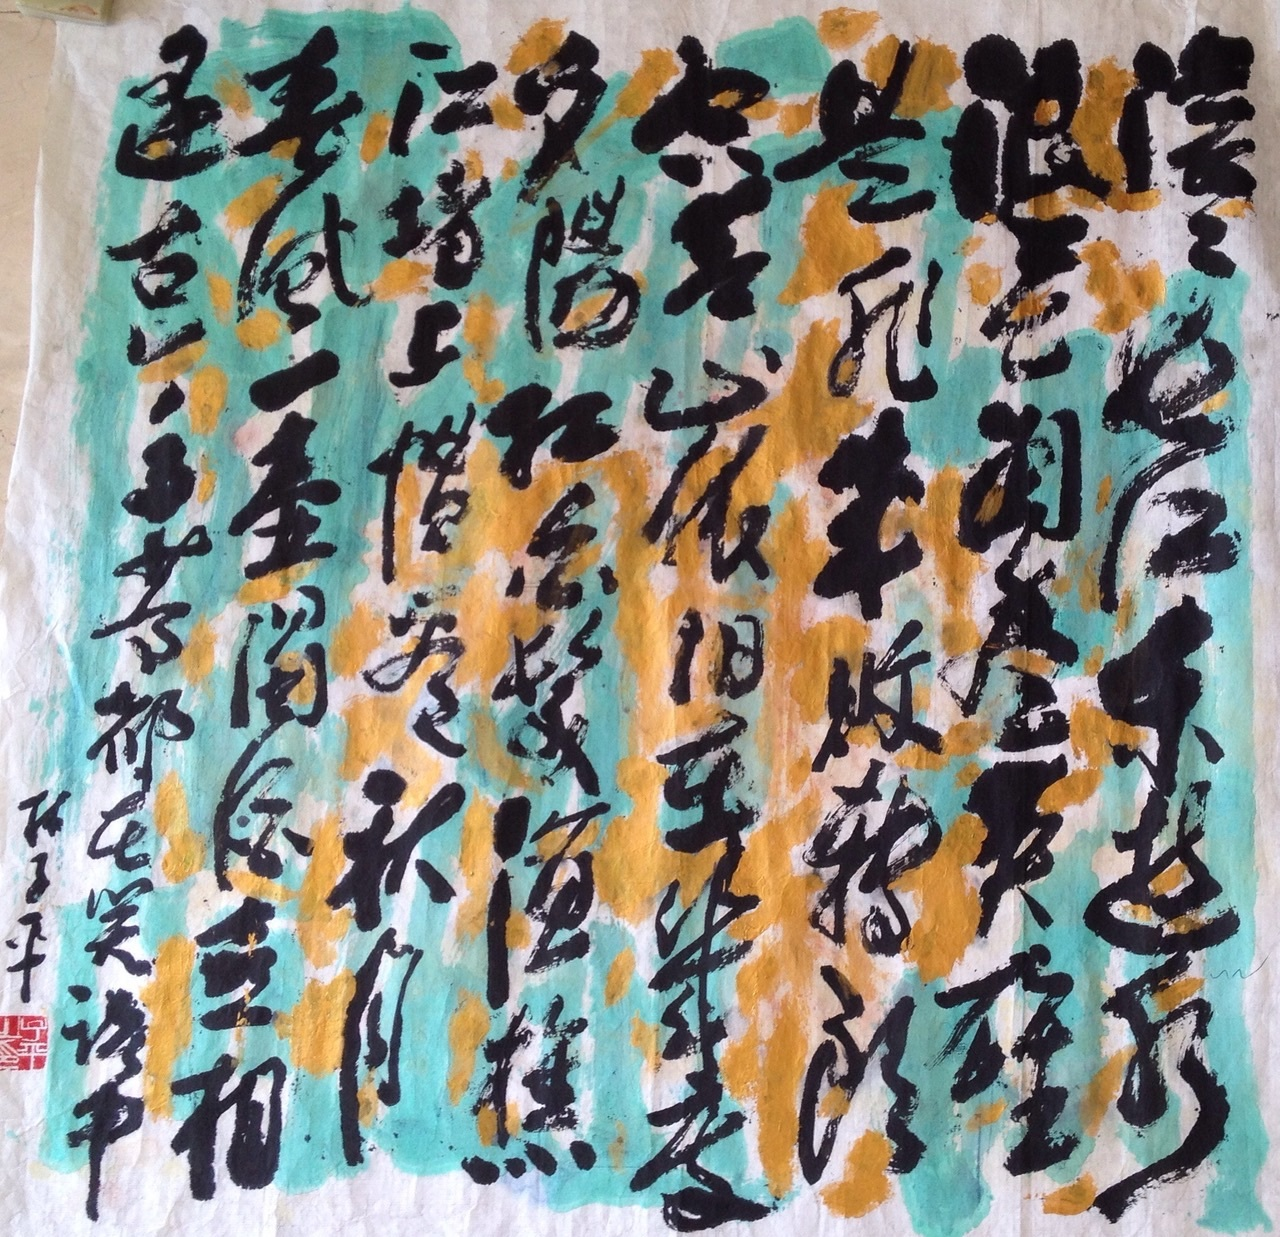 Lim Tze Peng Calligraphy II (2012) Chinese Ink & Colour on Rice Paper 100 x 100 cm